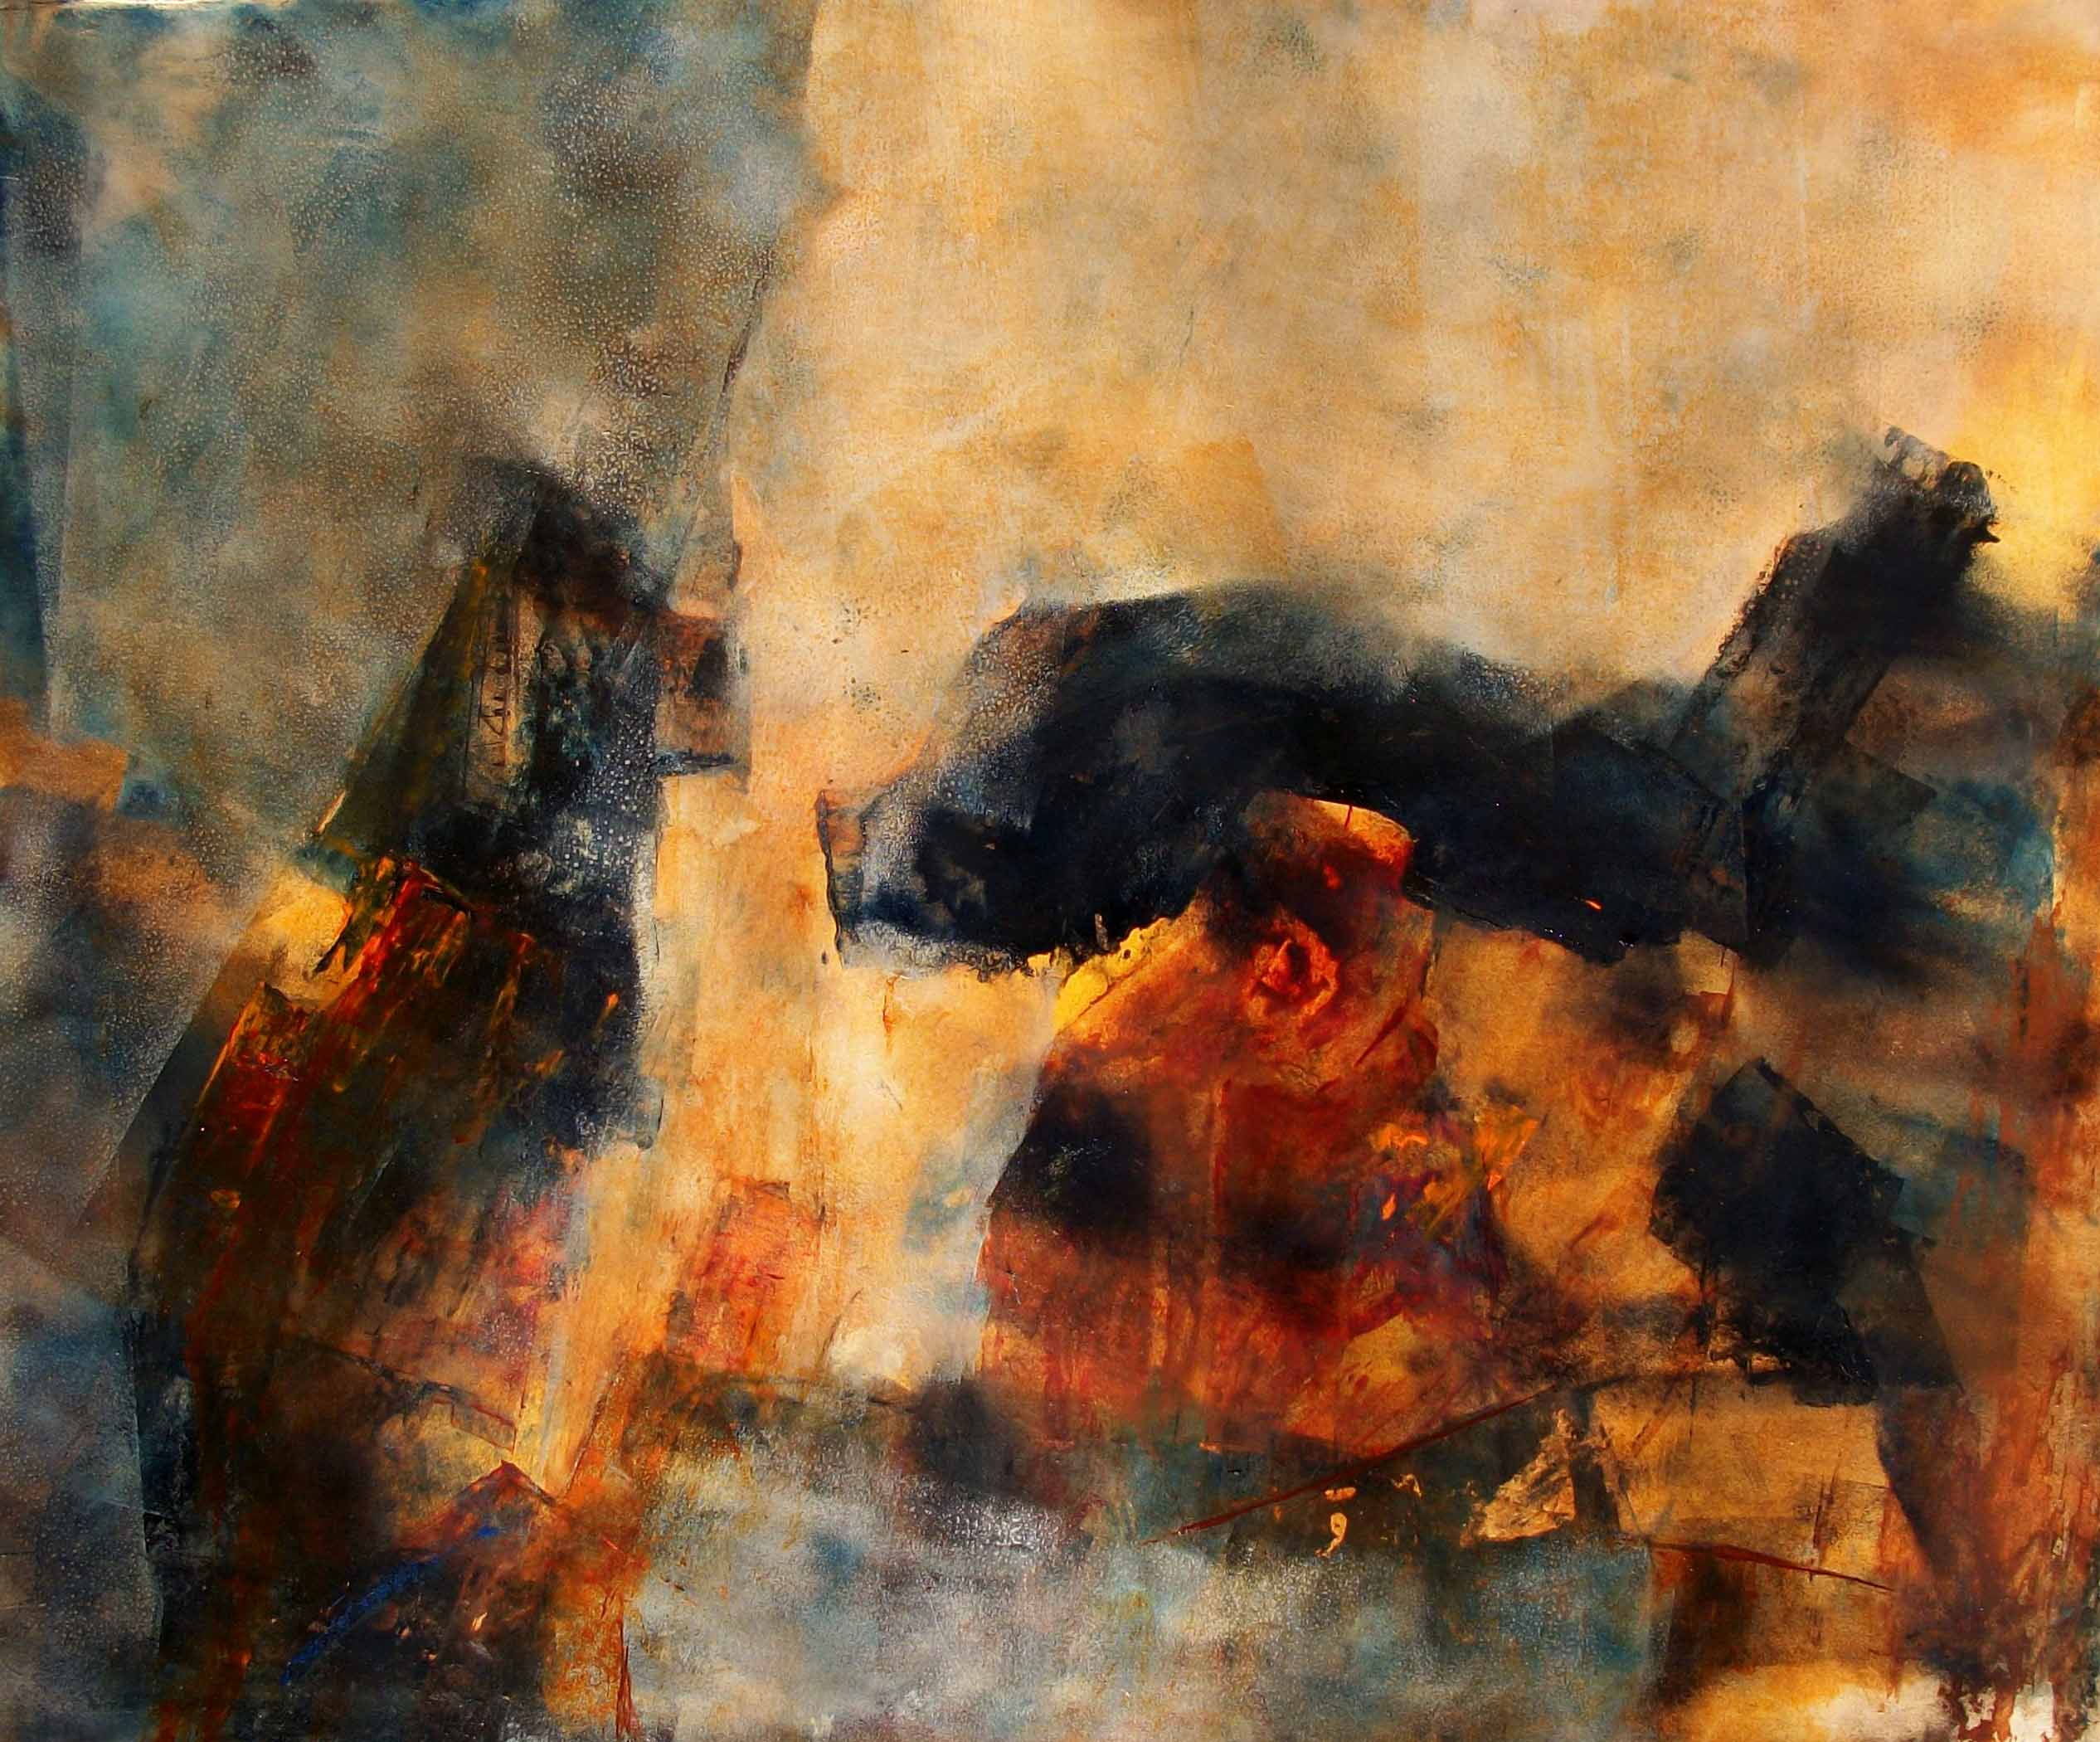 Neena Singh 7  Untitled - 21''x29'' - Inkl  Acrylic on hand made paper